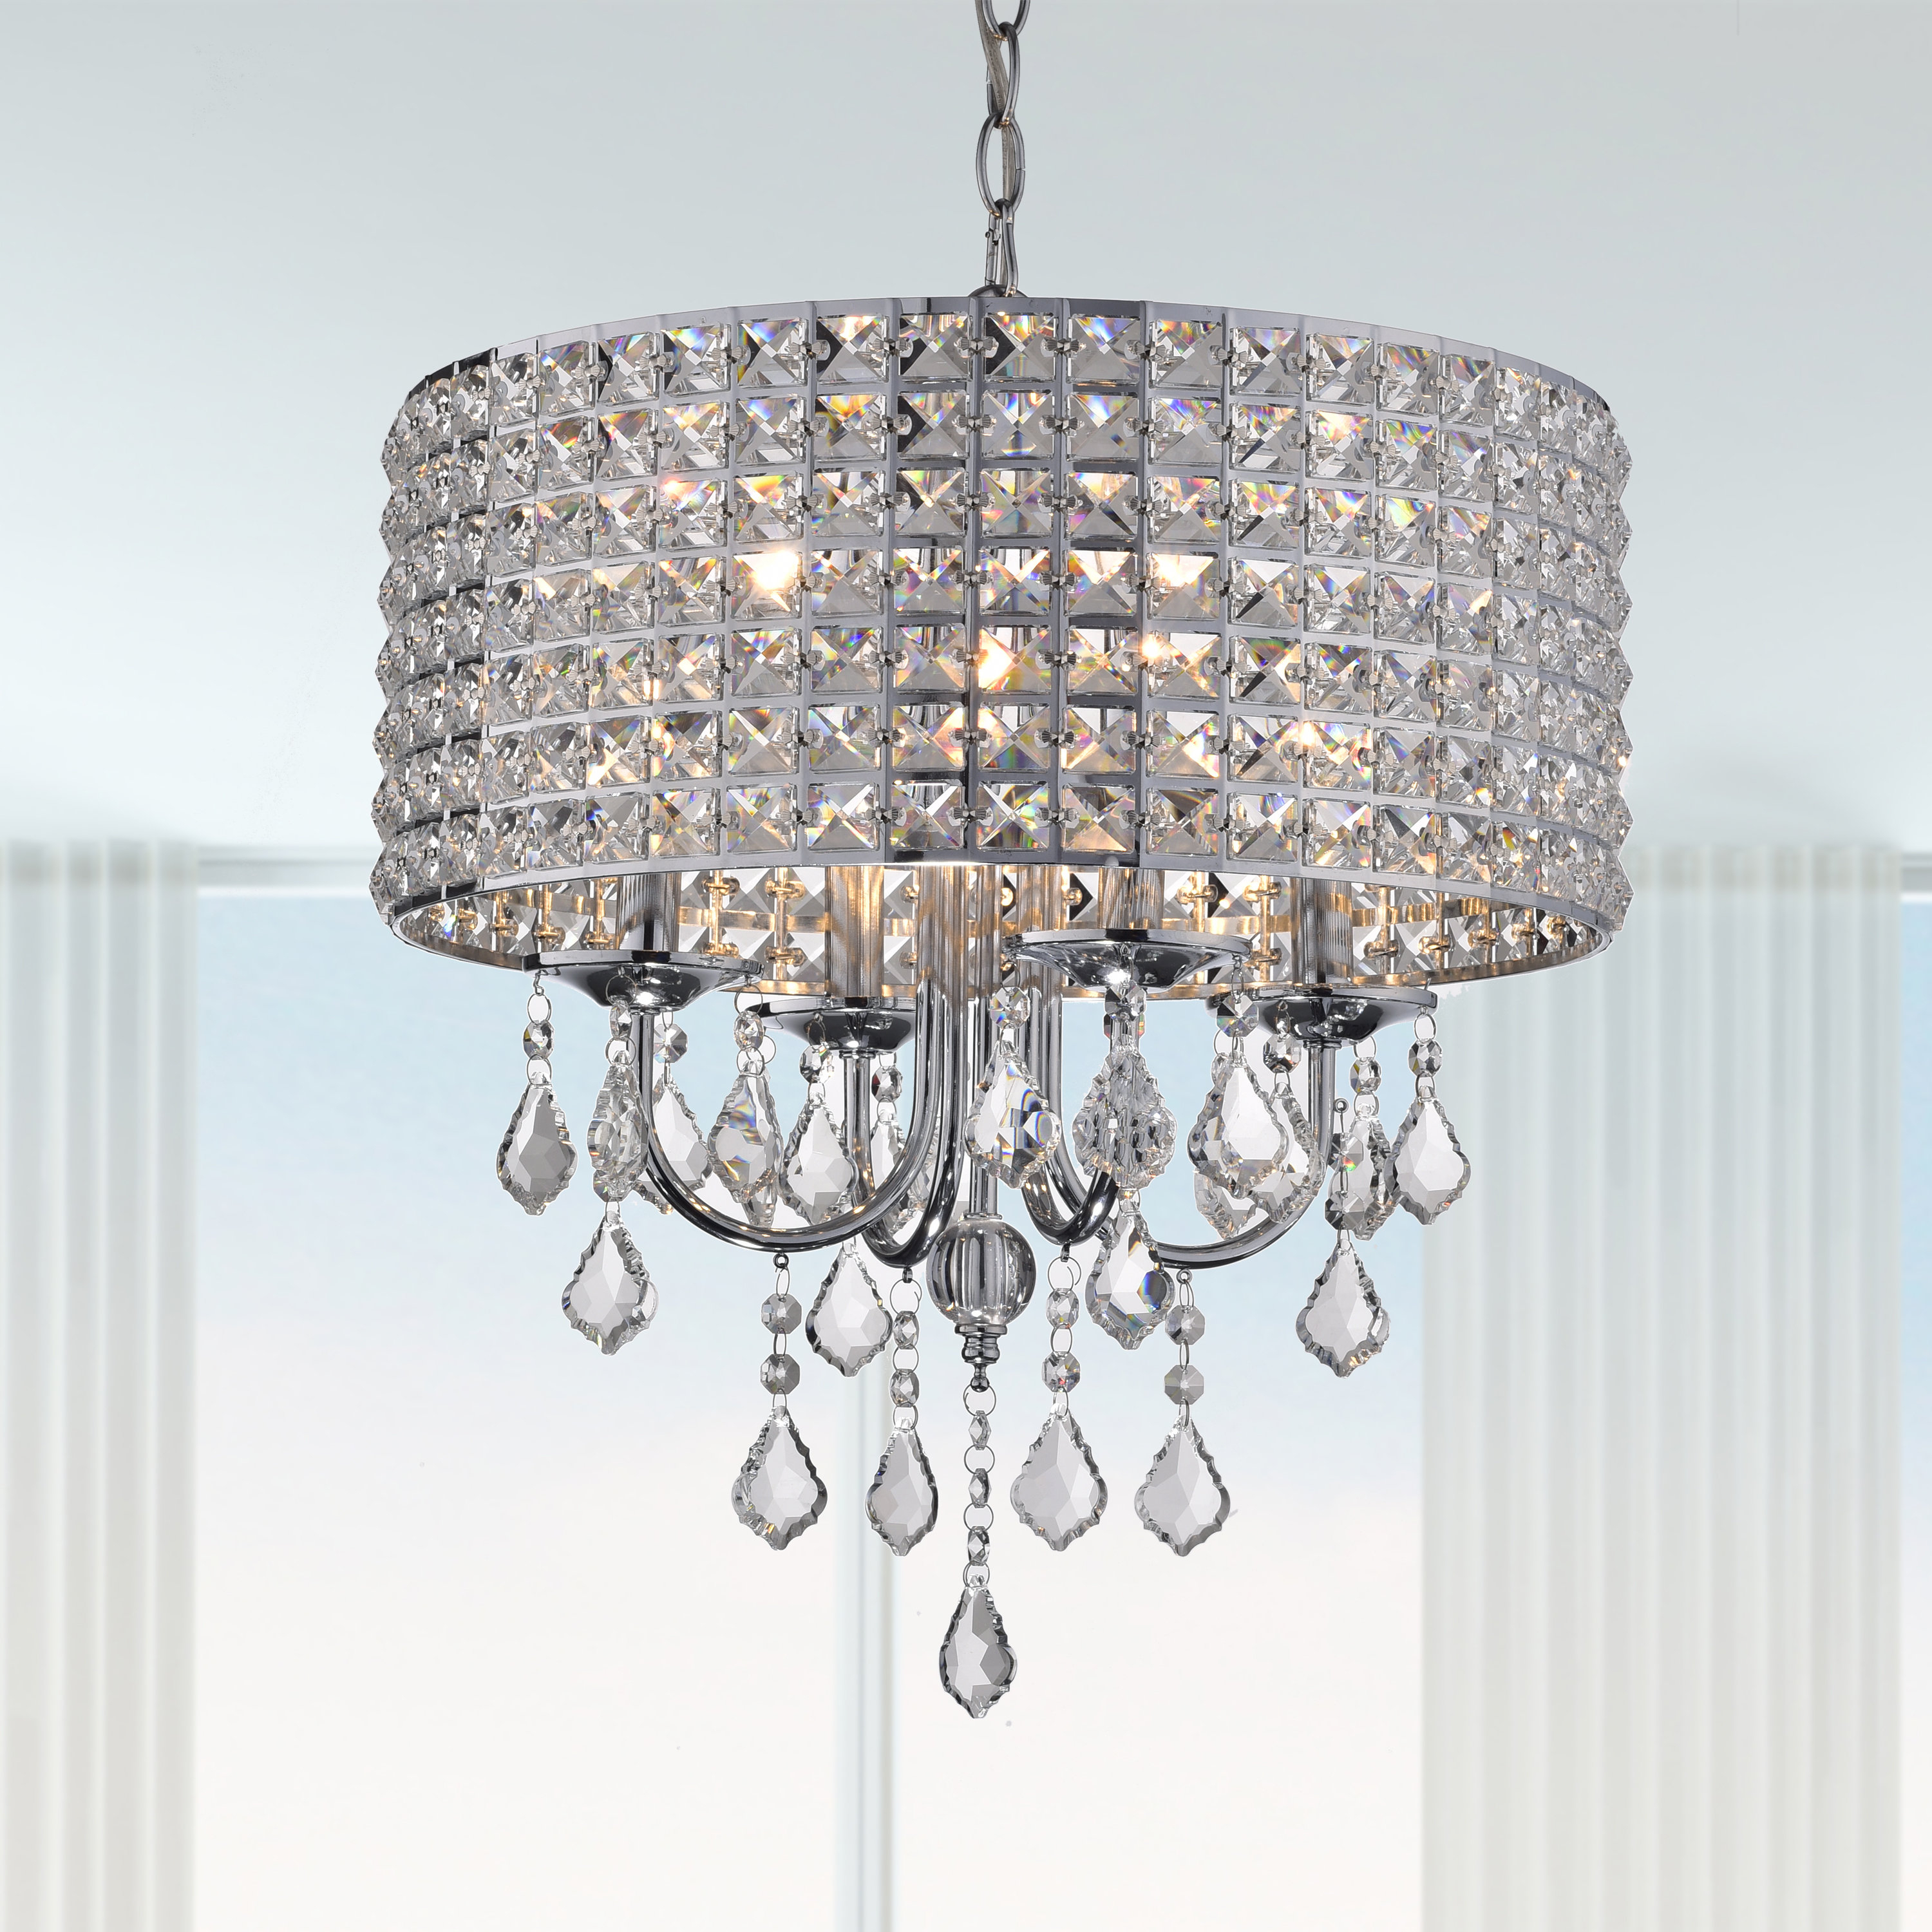 Albano 4 Light Crystal Chandelier In Gisselle 4 Light Drum Chandeliers (View 20 of 30)